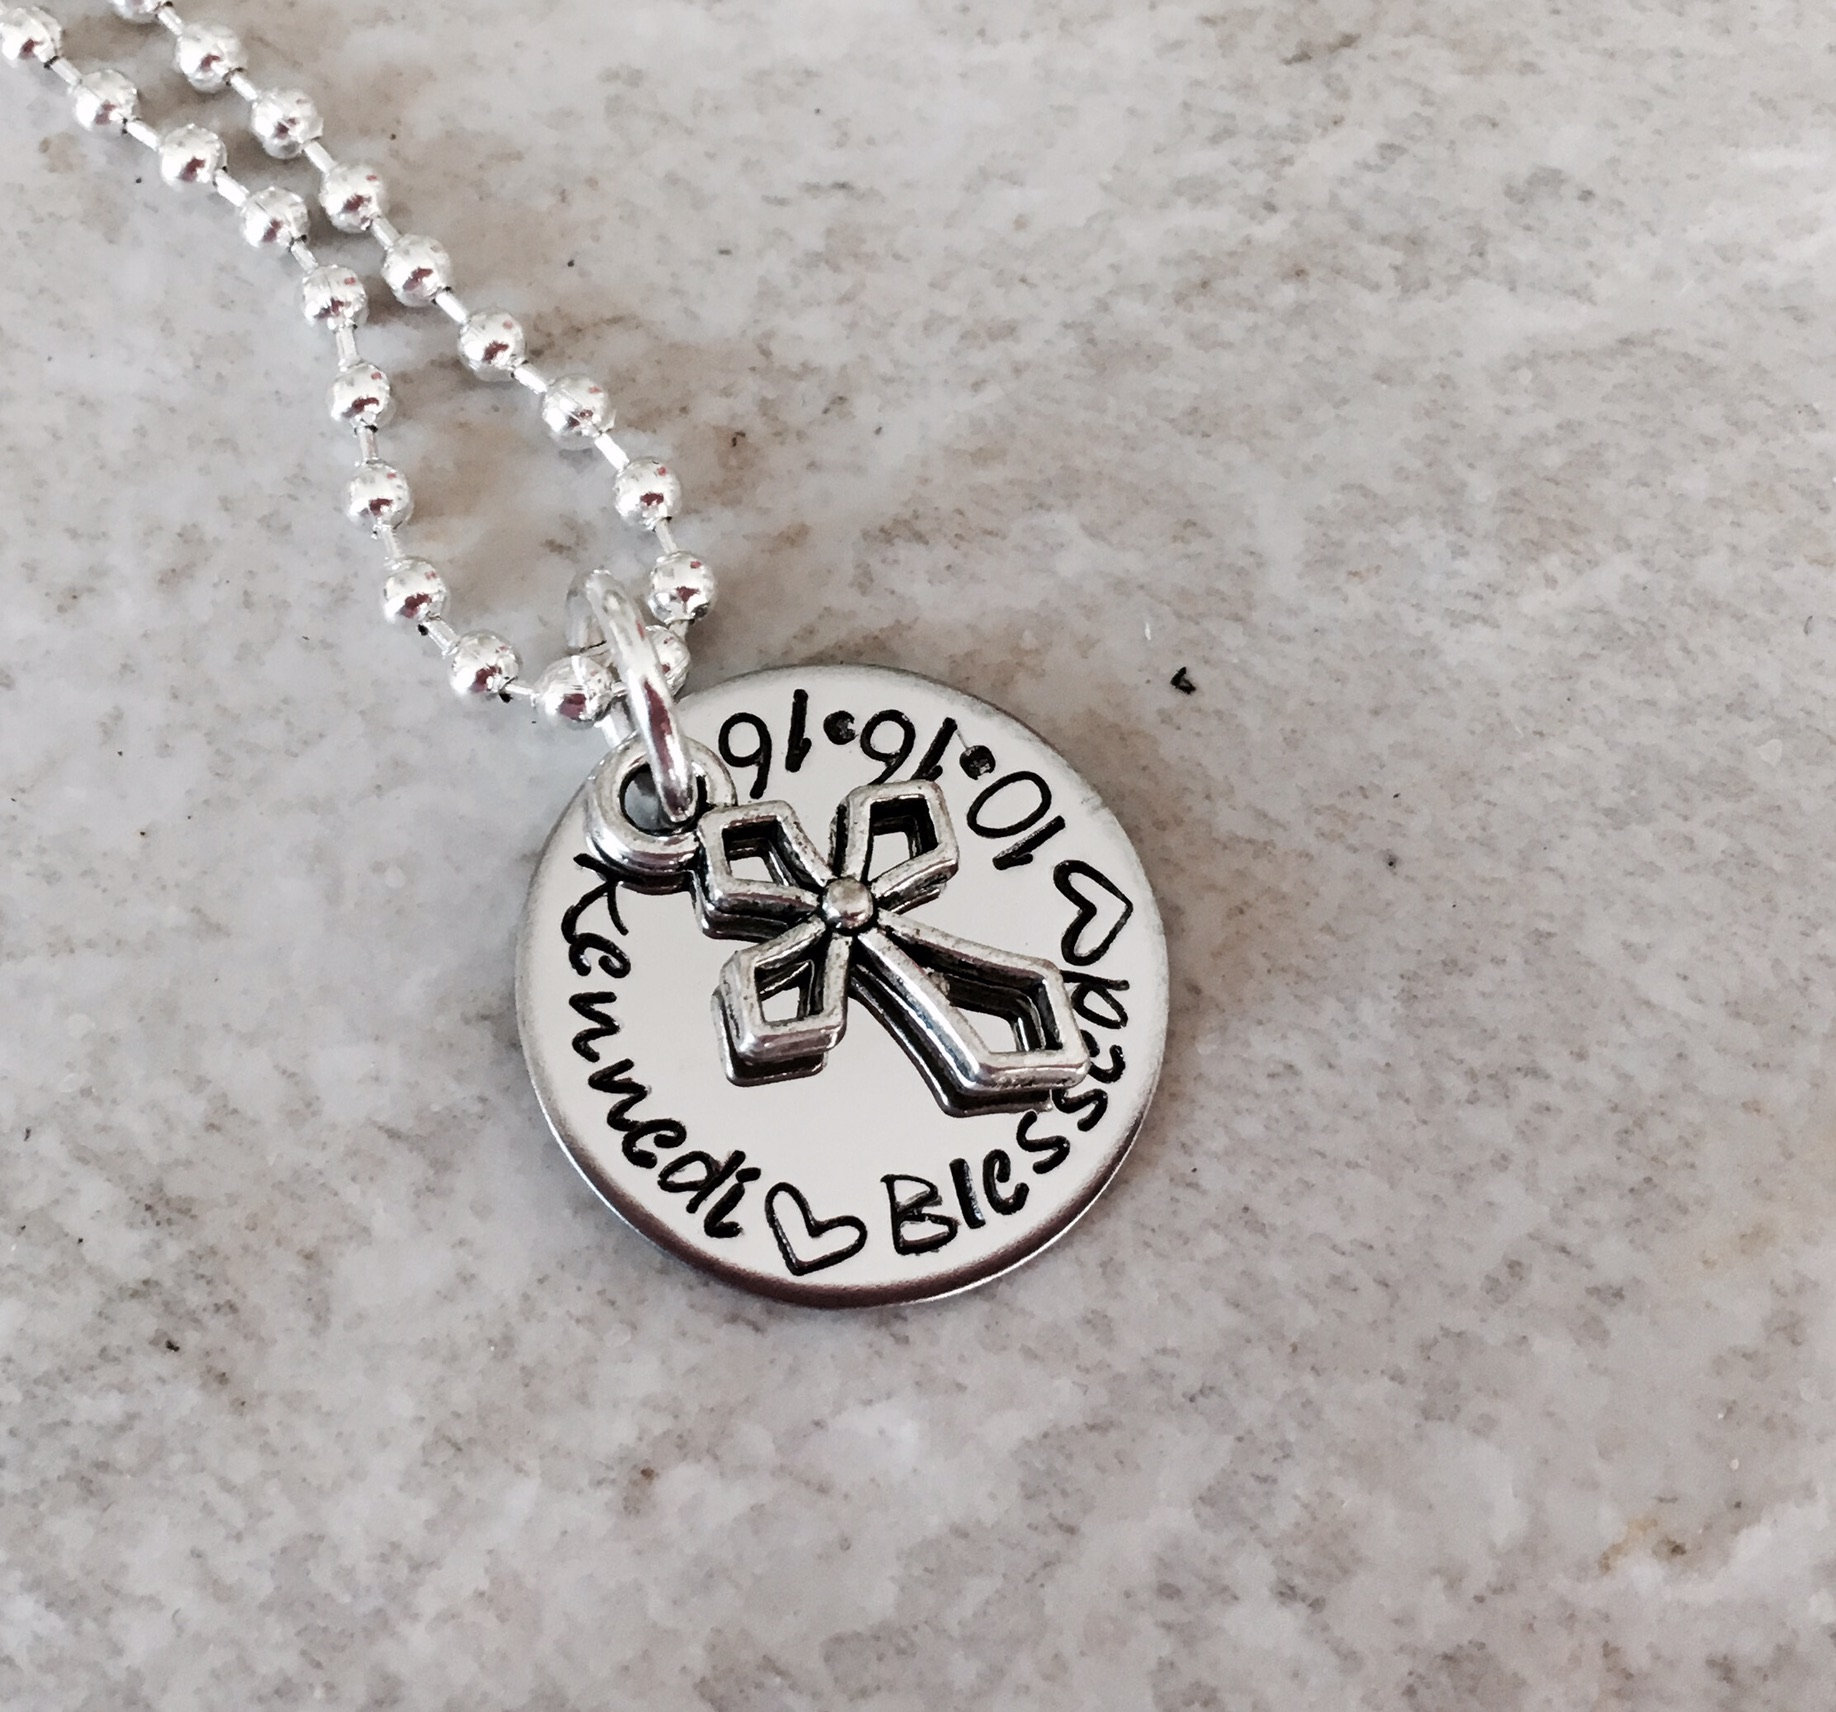 il communion necklace personalized charm baptism cross bible hand stamped fullxfull silver listing with holy sterling verse confirmation